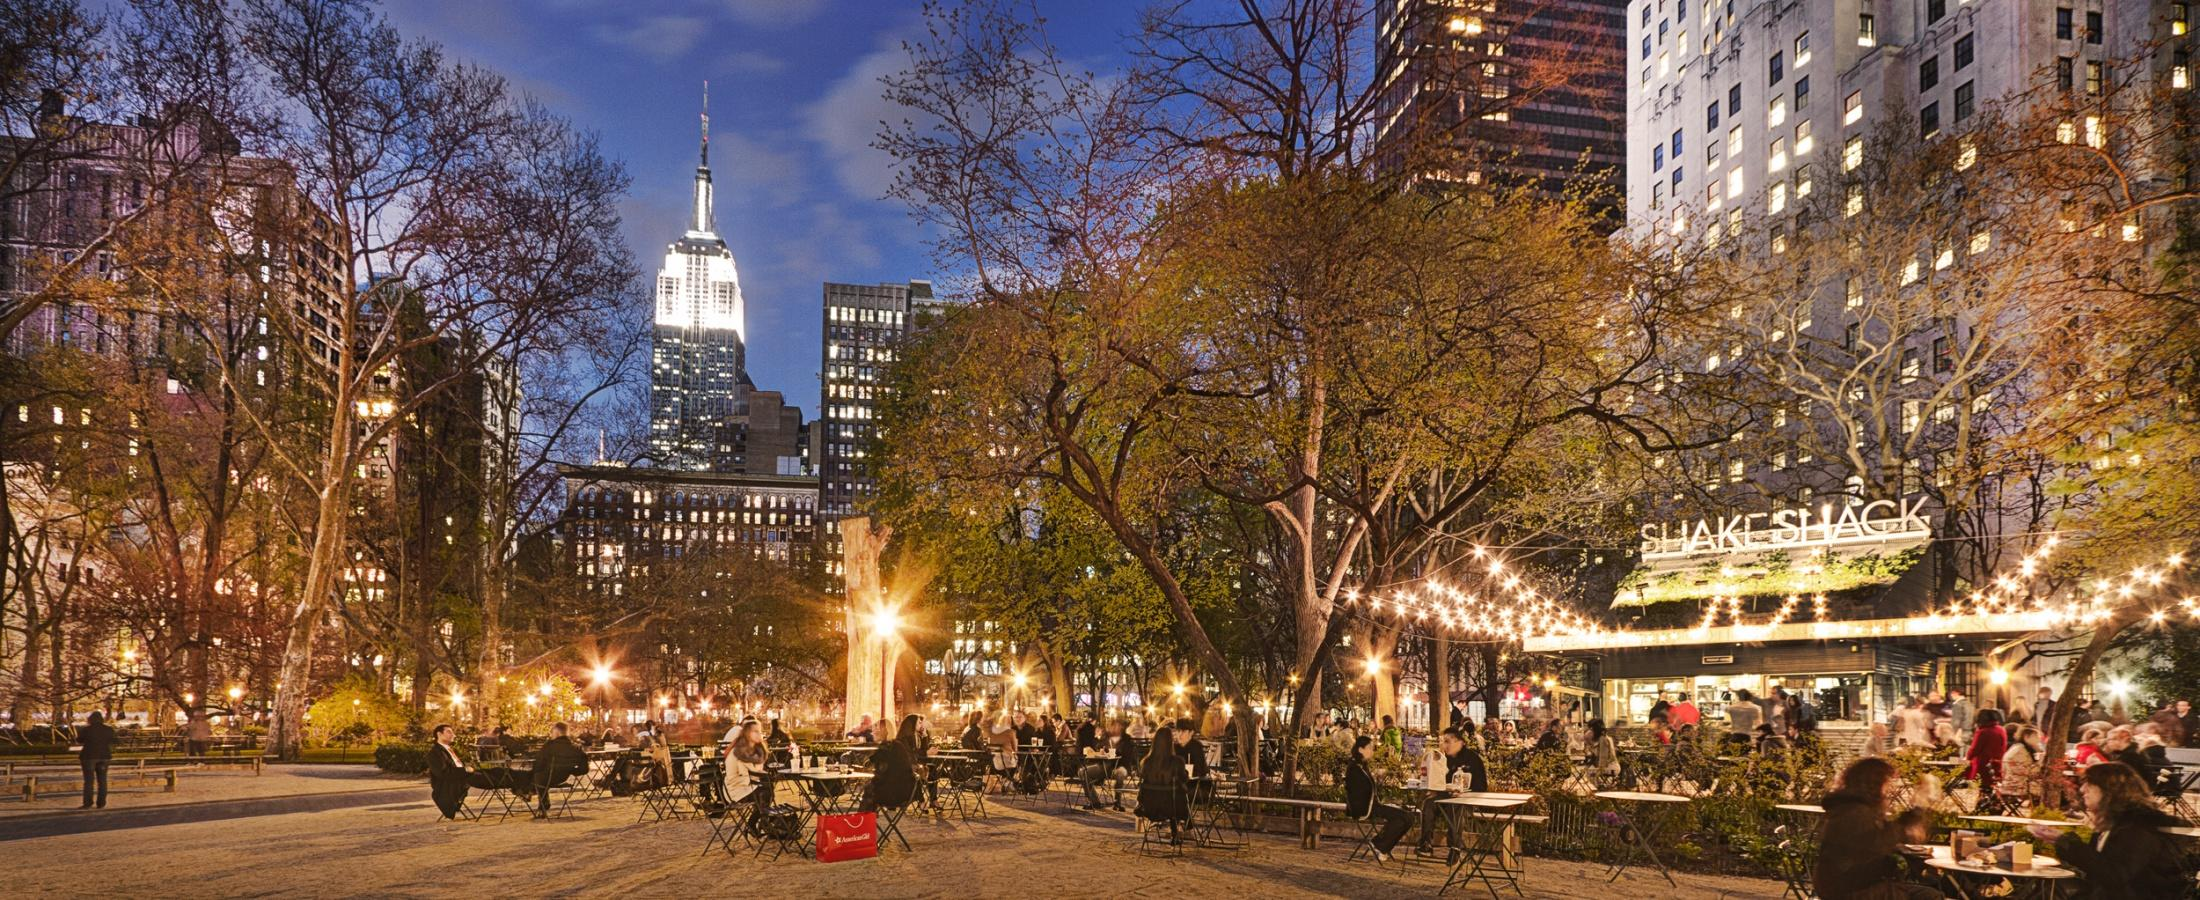 Shake Shack at Madison Square Park at Dusk